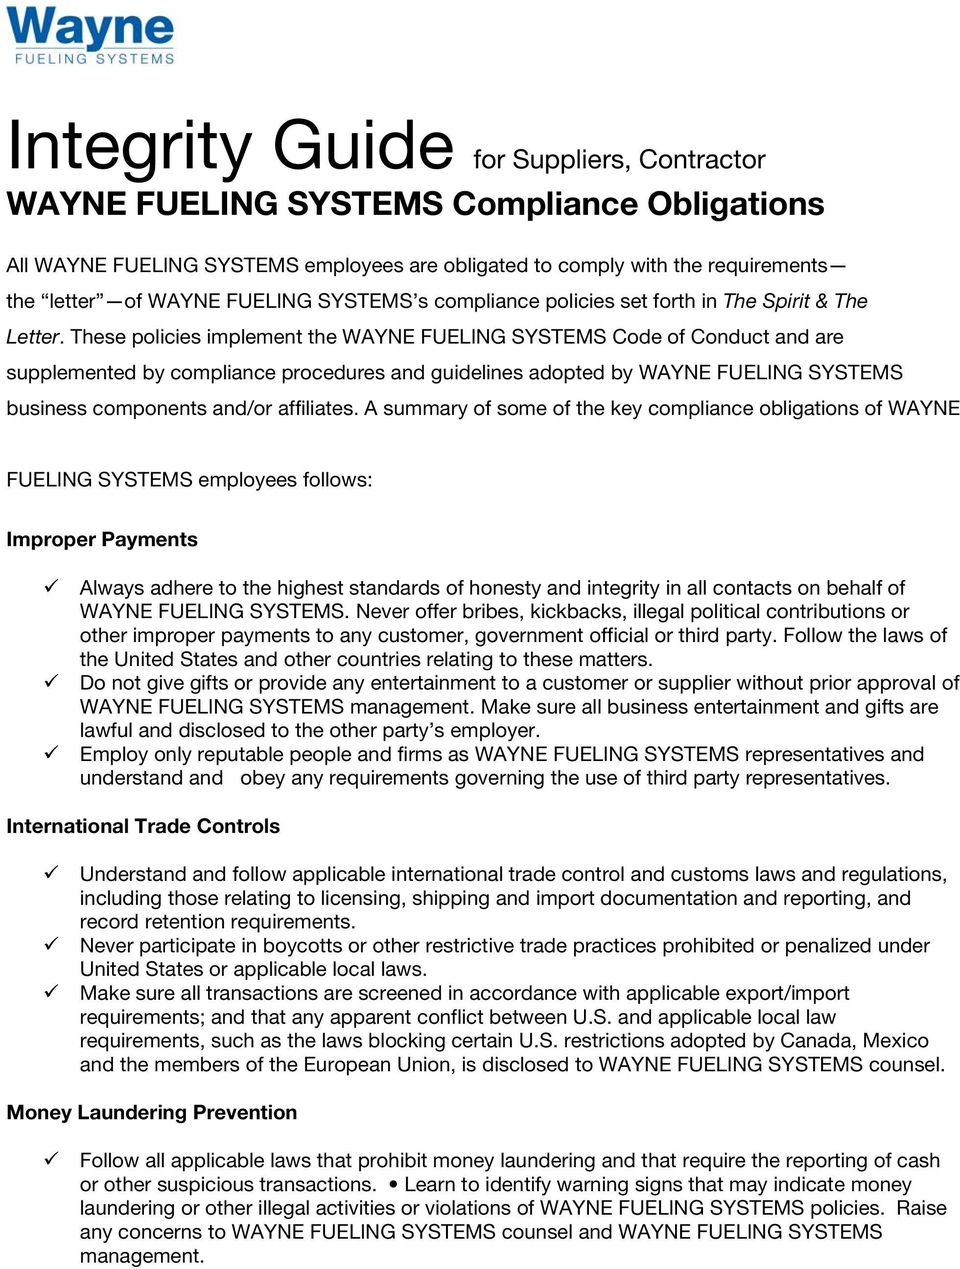 These policies implement the WAYNE FUELING SYSTEMS Code of Conduct and are supplemented by compliance procedures and guidelines adopted by WAYNE FUELING SYSTEMS business components and/or affiliates.